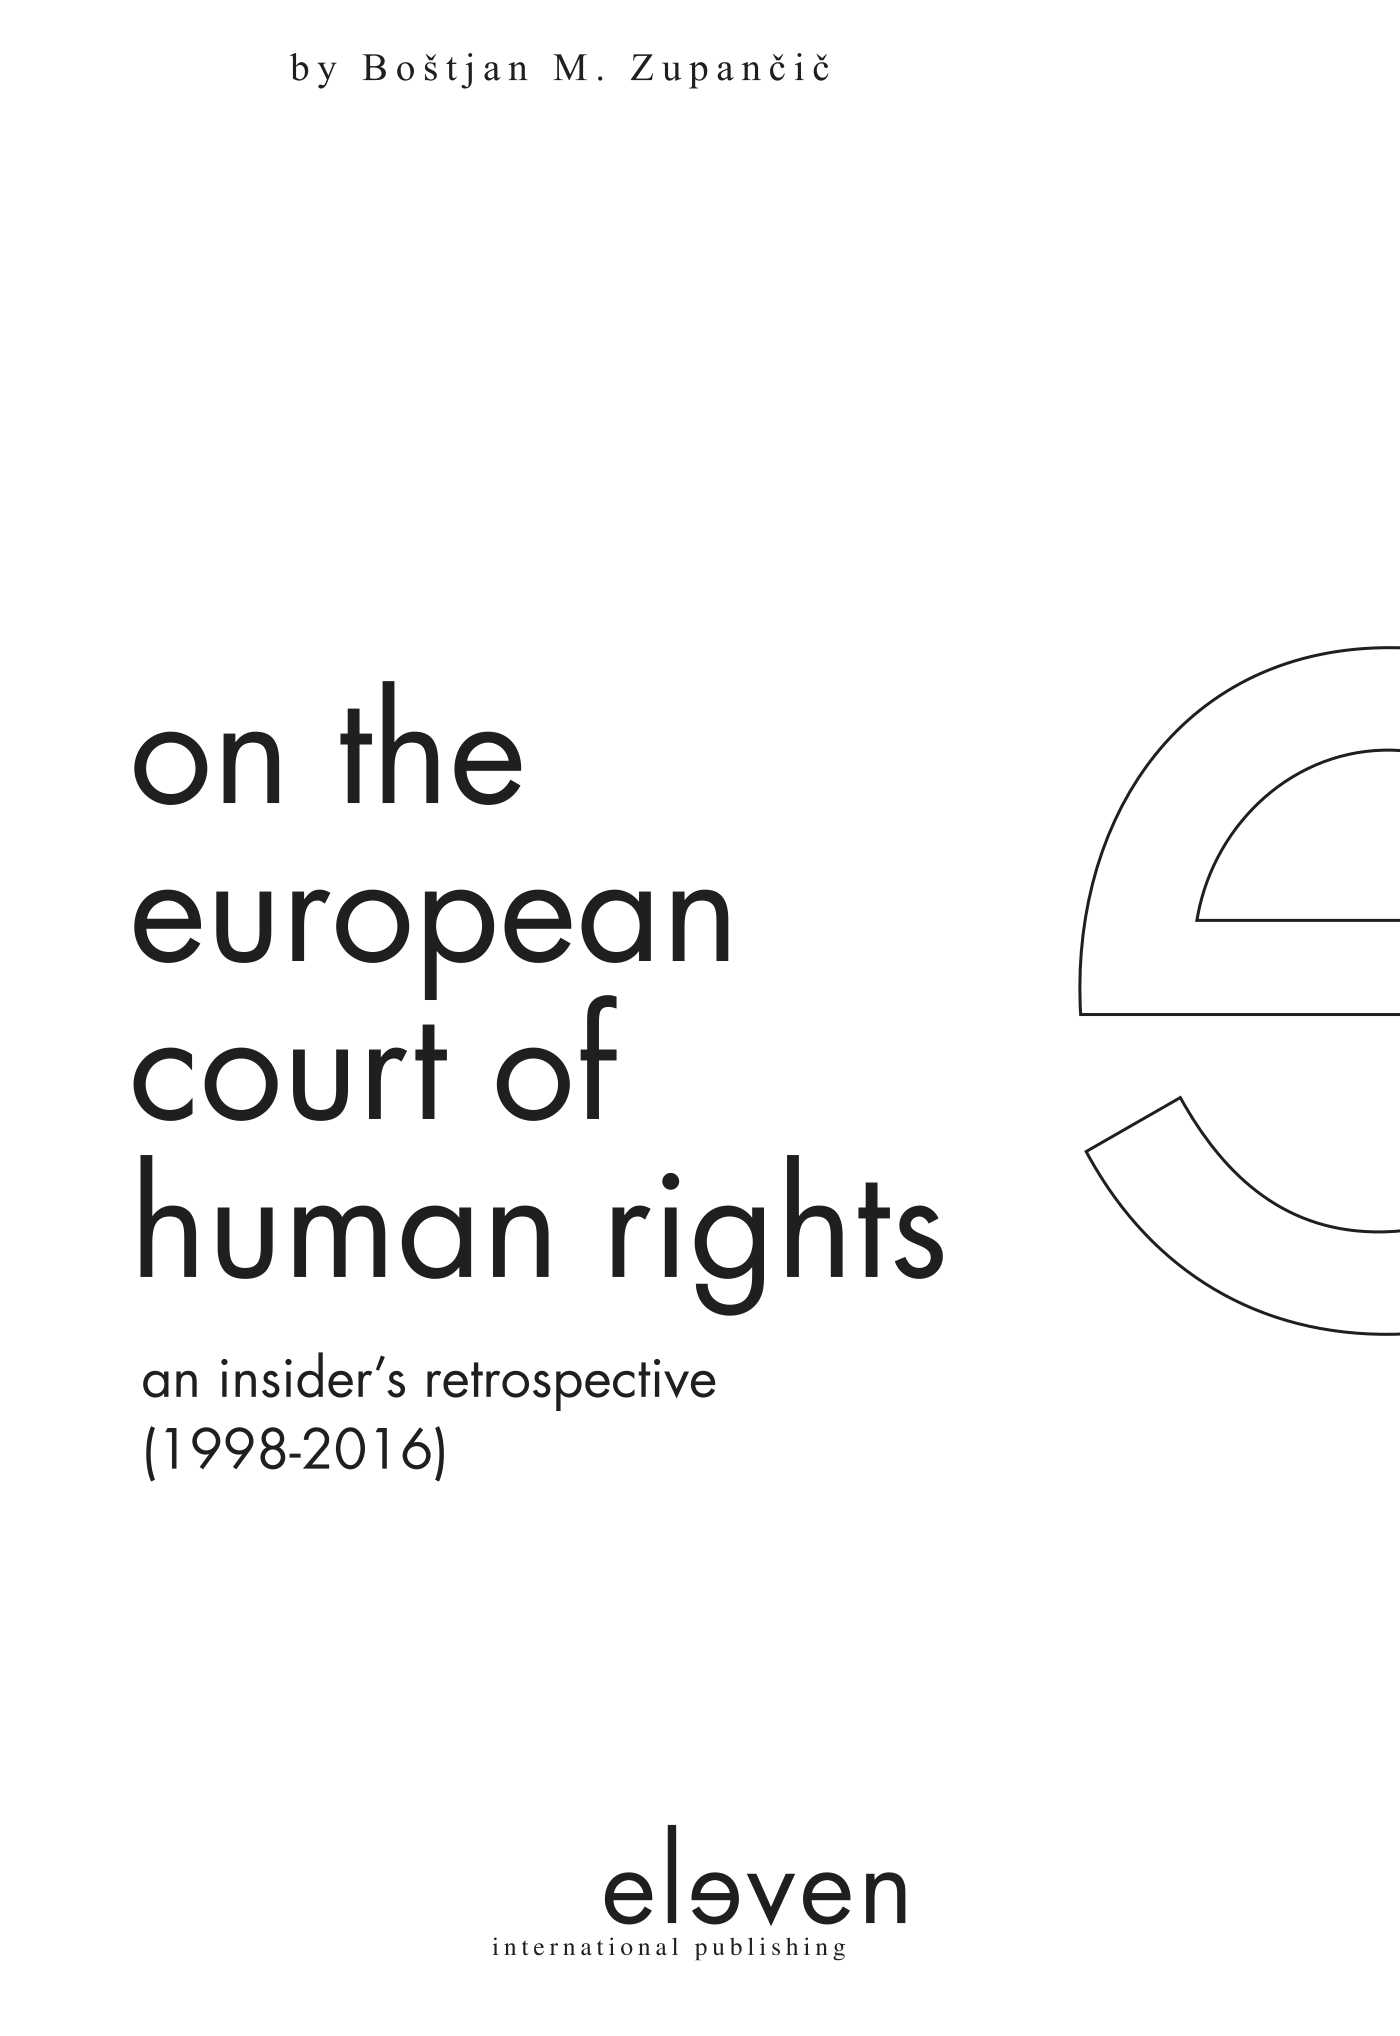 On the European Court of Human Rights